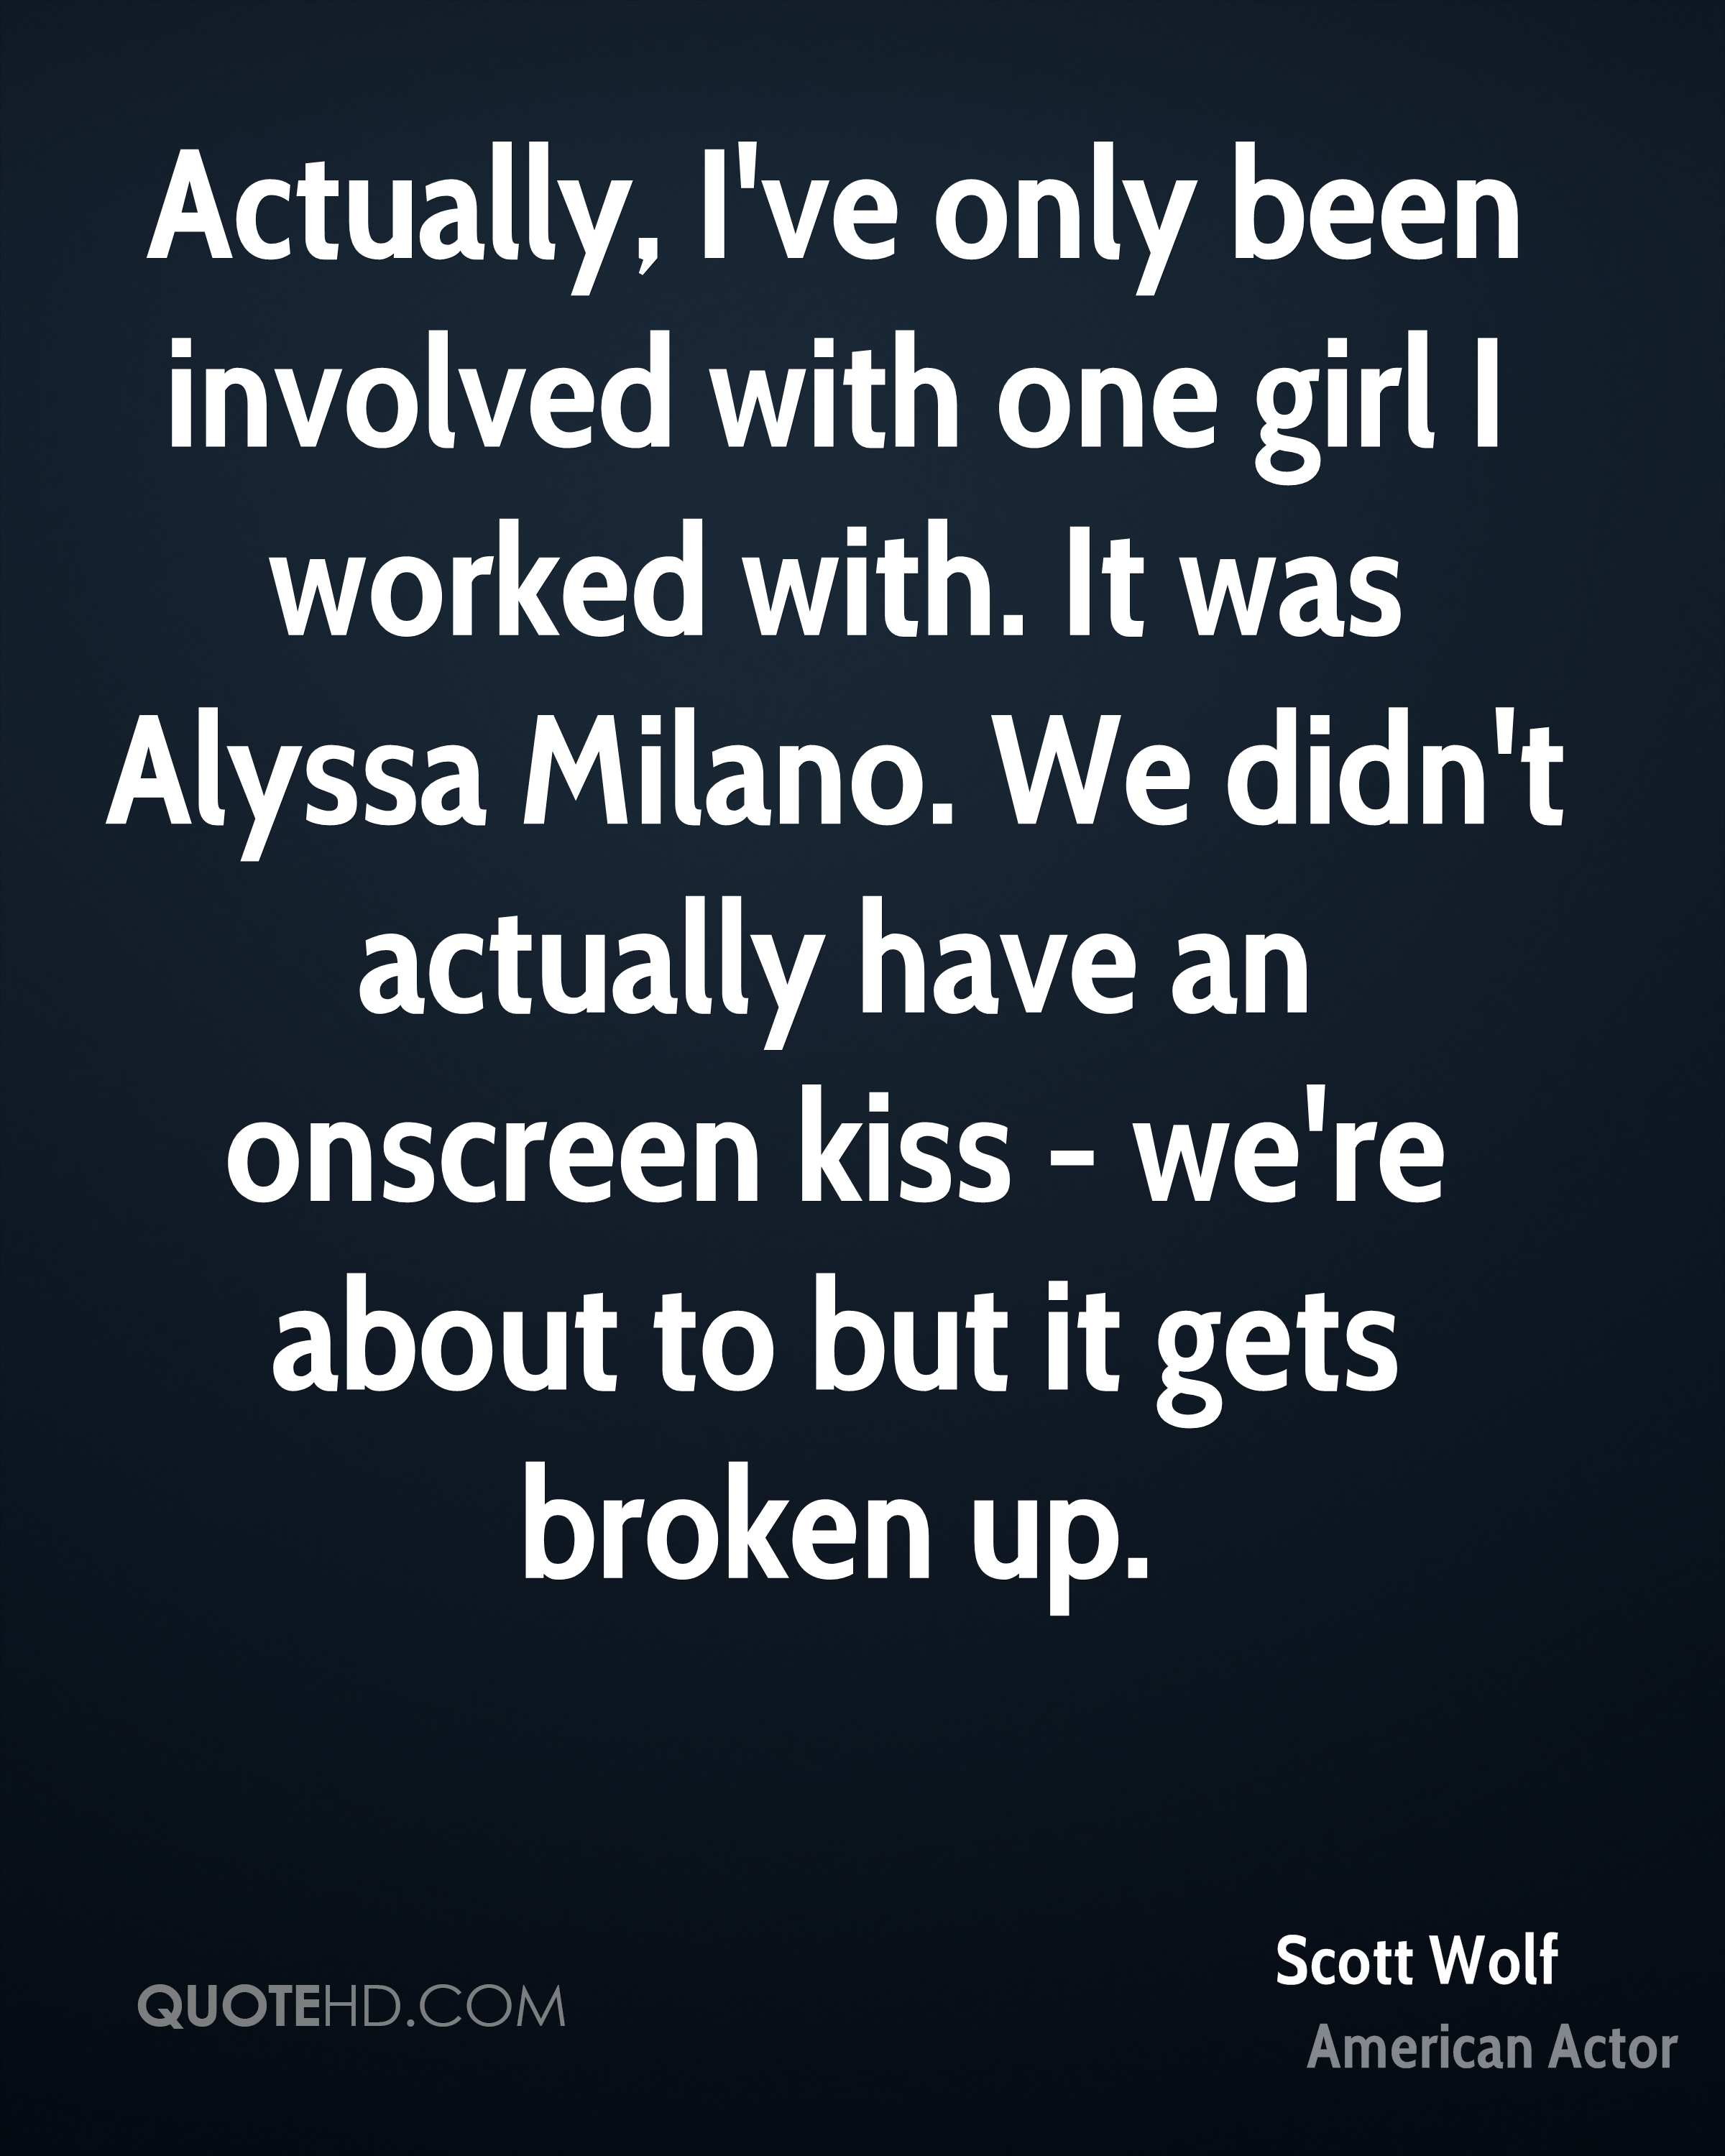 Actually, I've only been involved with one girl I worked with. It was Alyssa Milano. We didn't actually have an onscreen kiss - we're about to but it gets broken up.